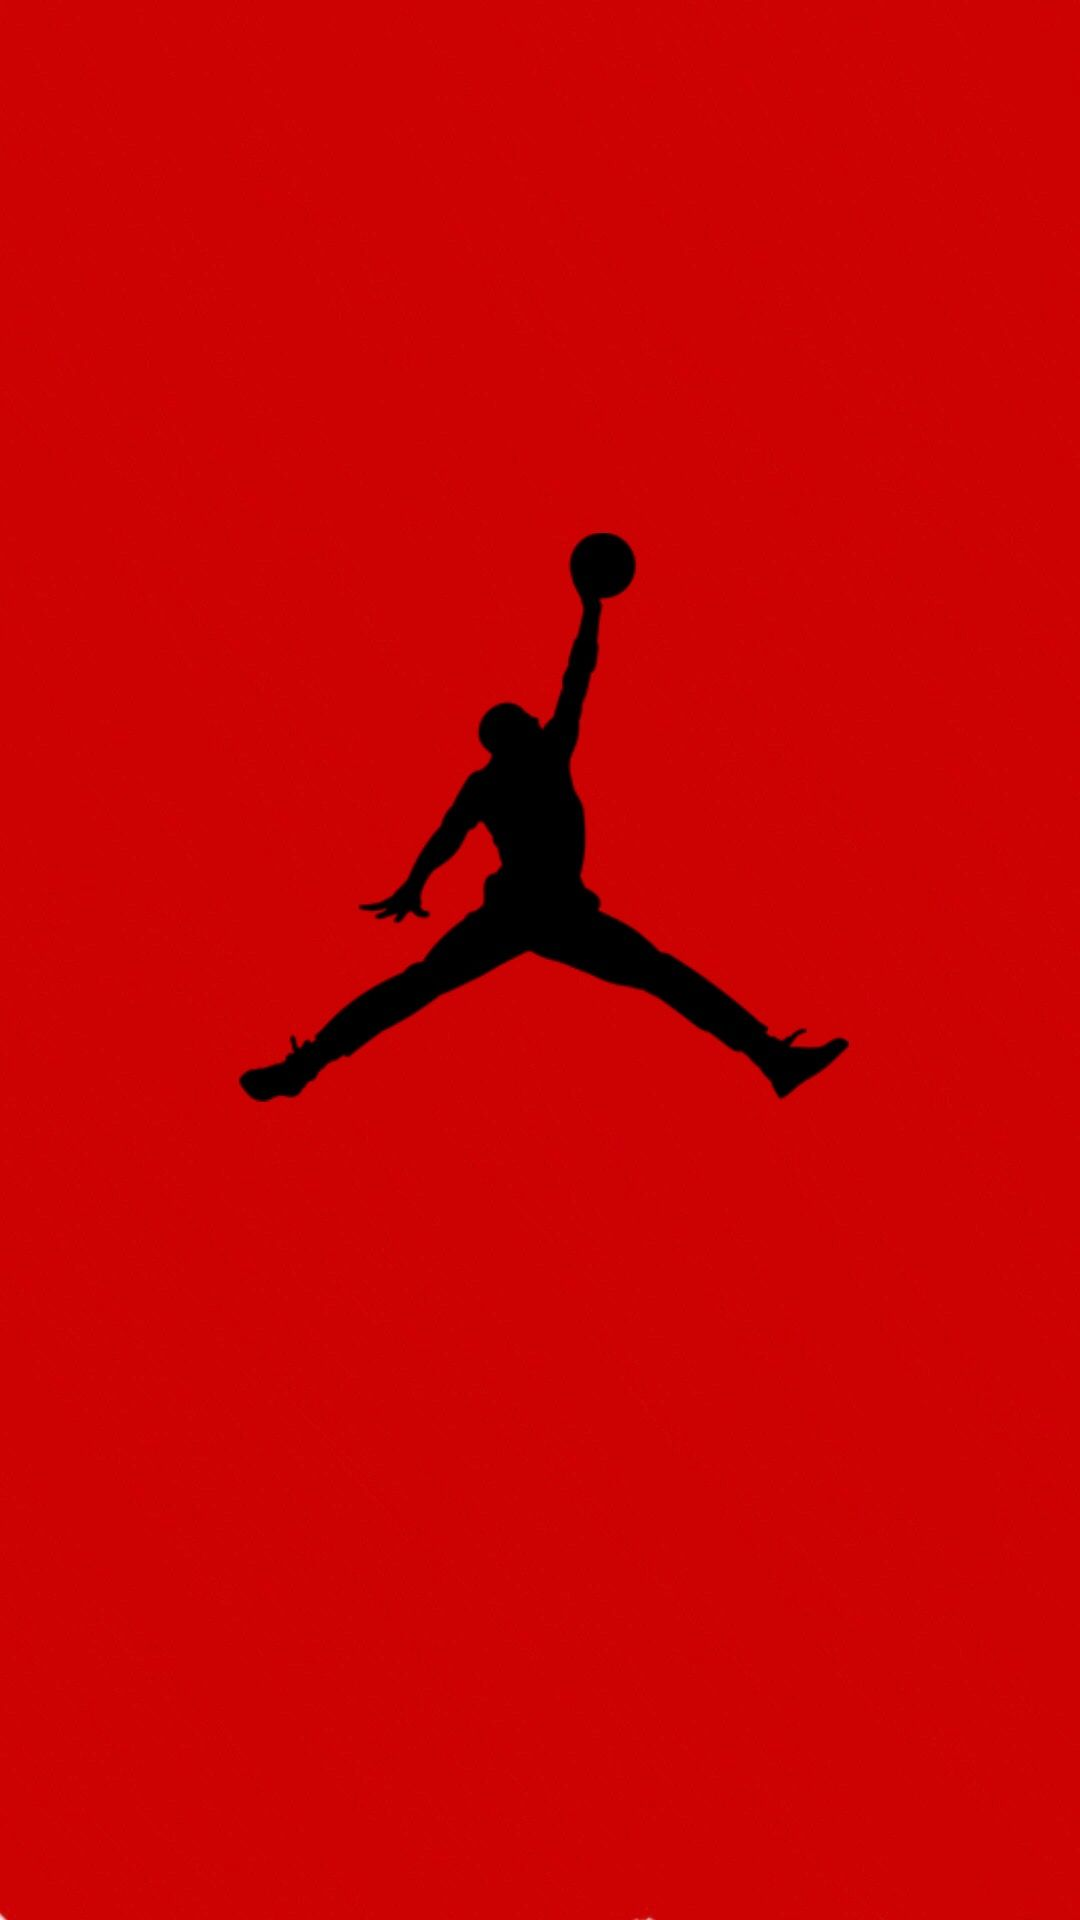 Jordan Logo - Air jordan logo iphone background | Backgrounds for iphone